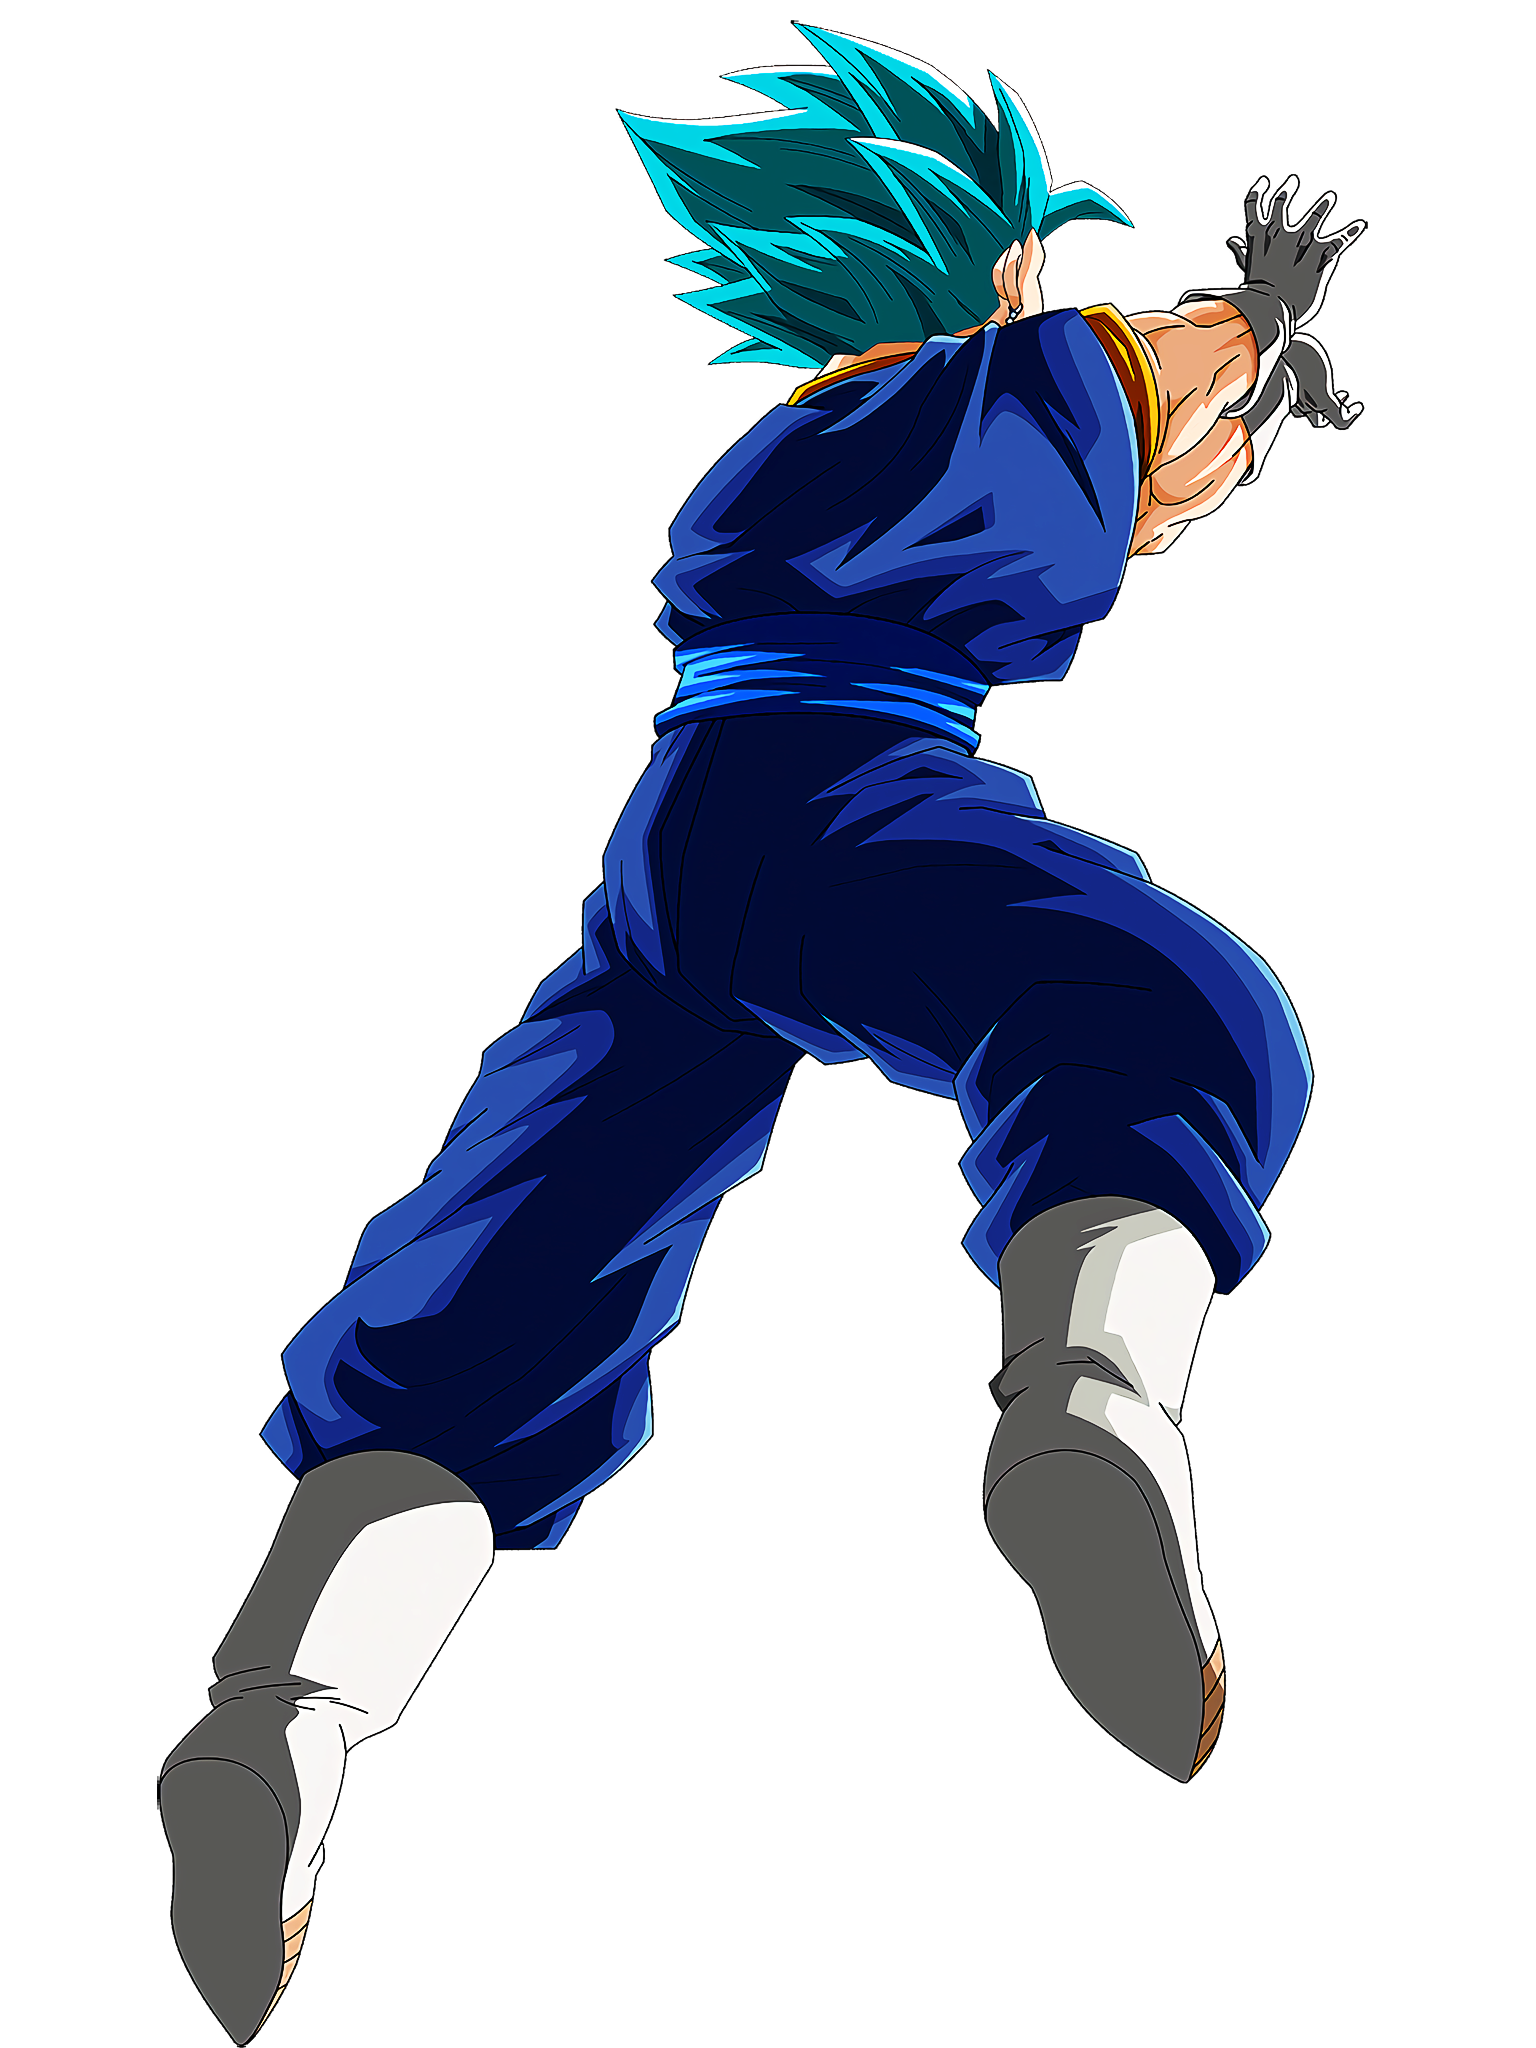 Vegito Blue Summon Animation 1 DBS Render (Dragon Ball Z Dokkan Battle).png